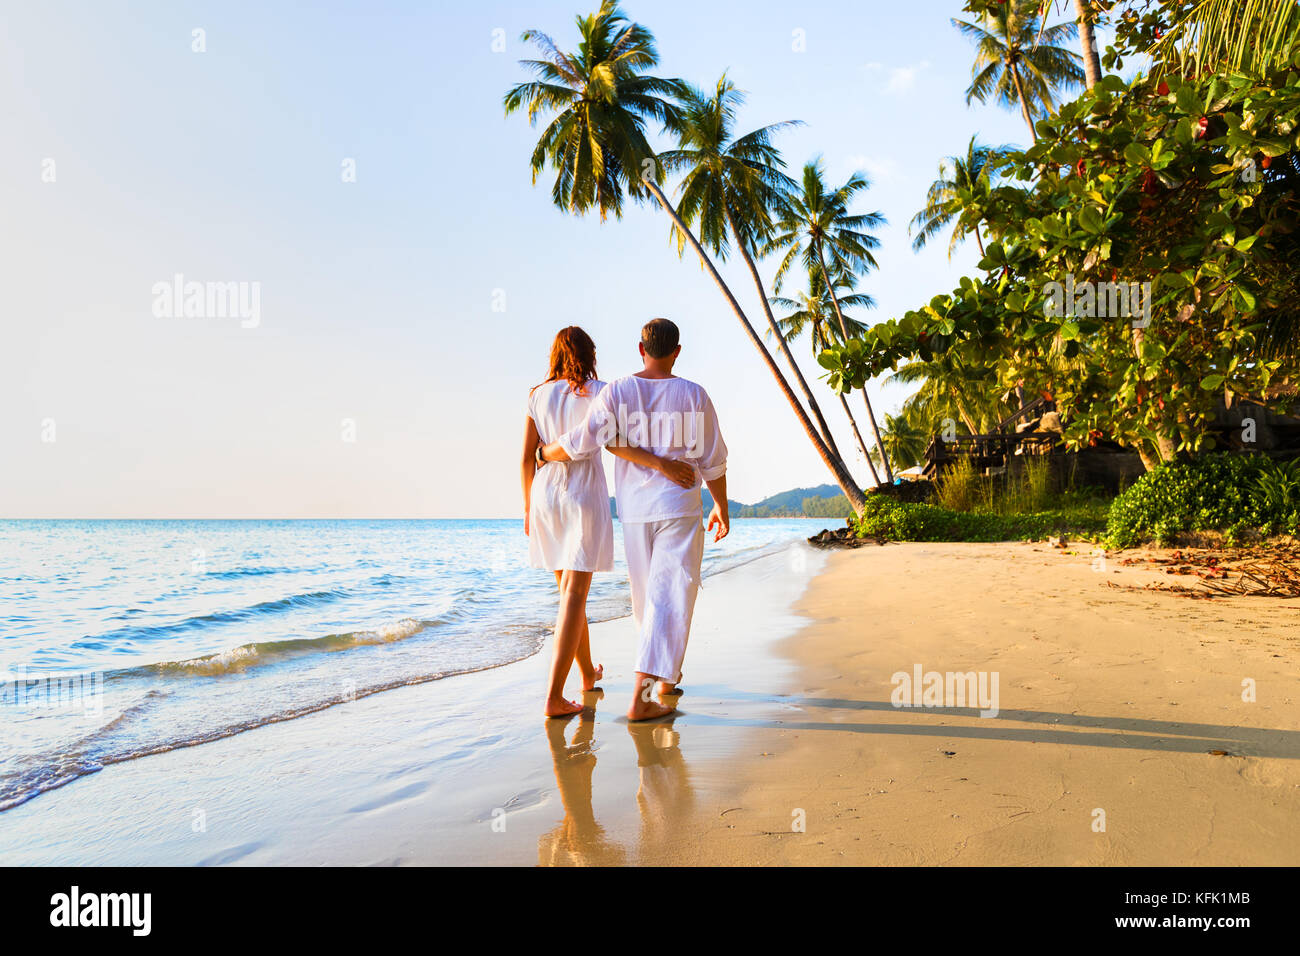 Romantic couple walking together on the tropical beach in warm sunny summer during honeymoon vacations - Stock Image